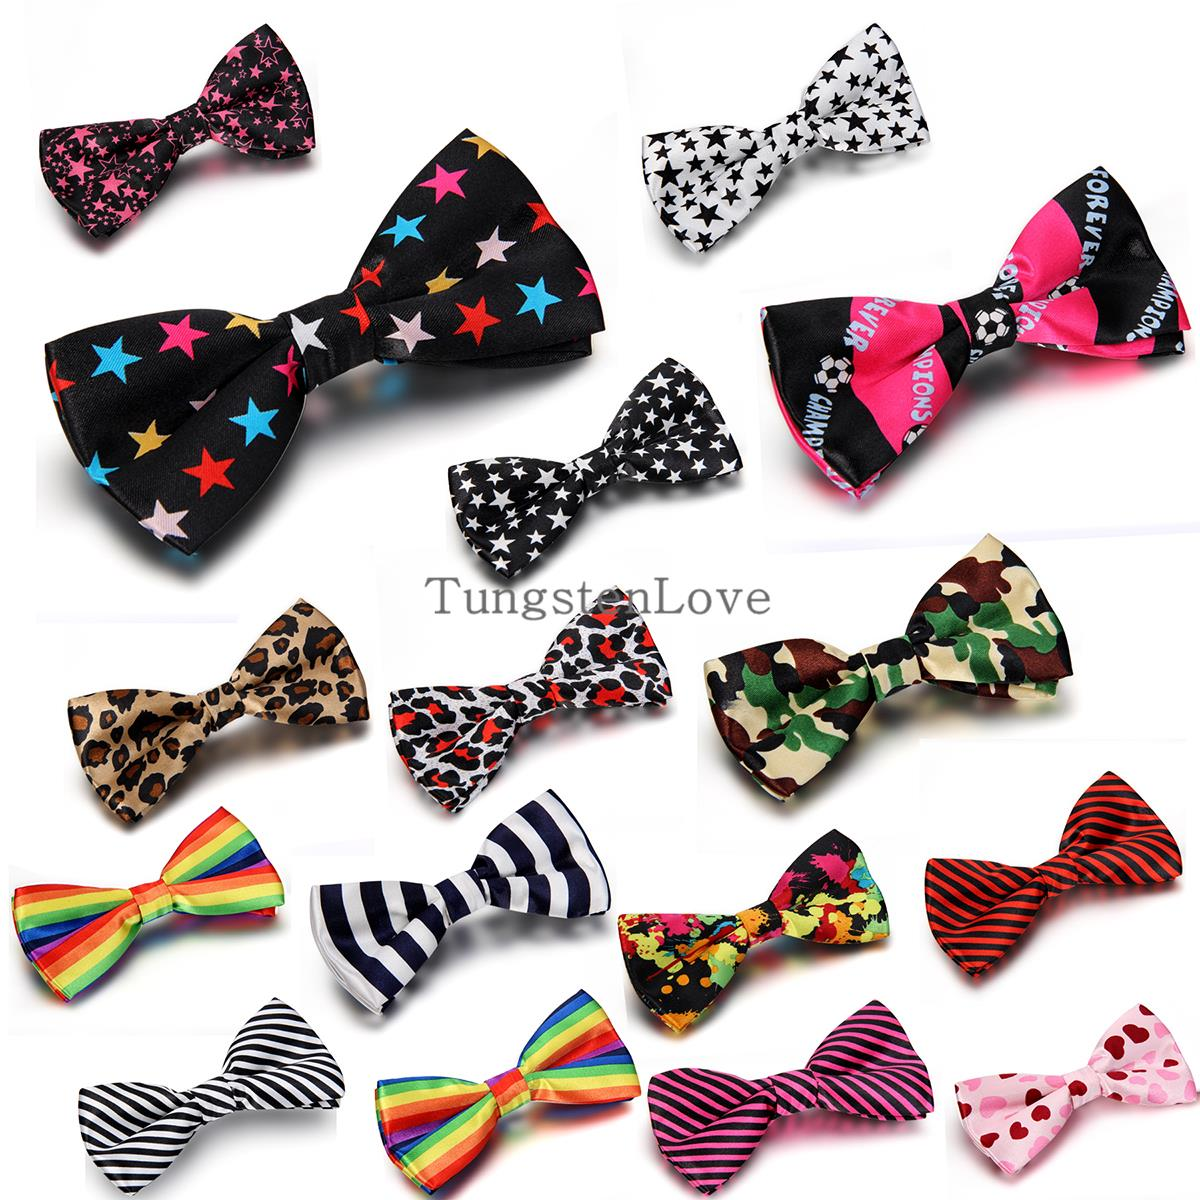 New Fashion Adjustable Star Leopard Striped Rainbow Letters Printed Tie Men Bowties Wedding Tie Banquet Tie Butterfly Pre-Tied(China (Mainland))